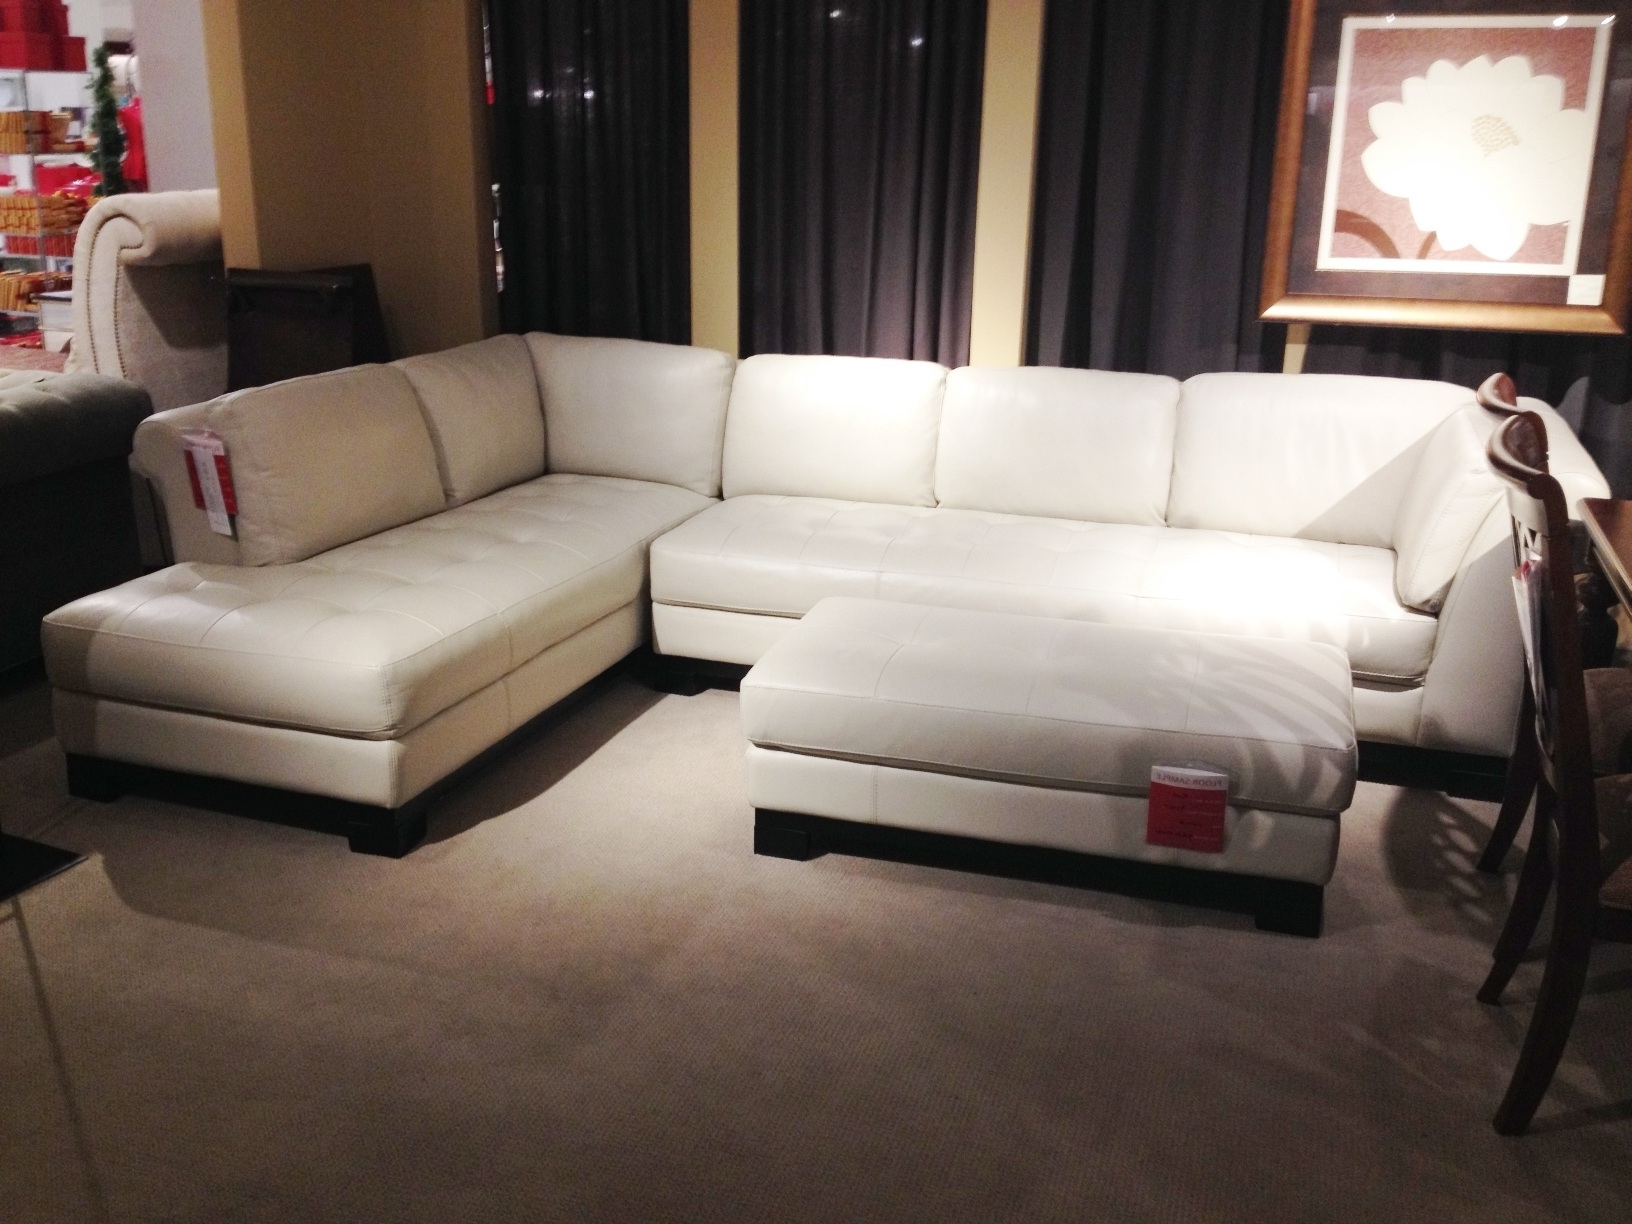 White Leather Sectional Sofa Macy's • Leather Sofa With Regard To Well Liked Macys Leather Sectional Sofas (View 2 of 15)